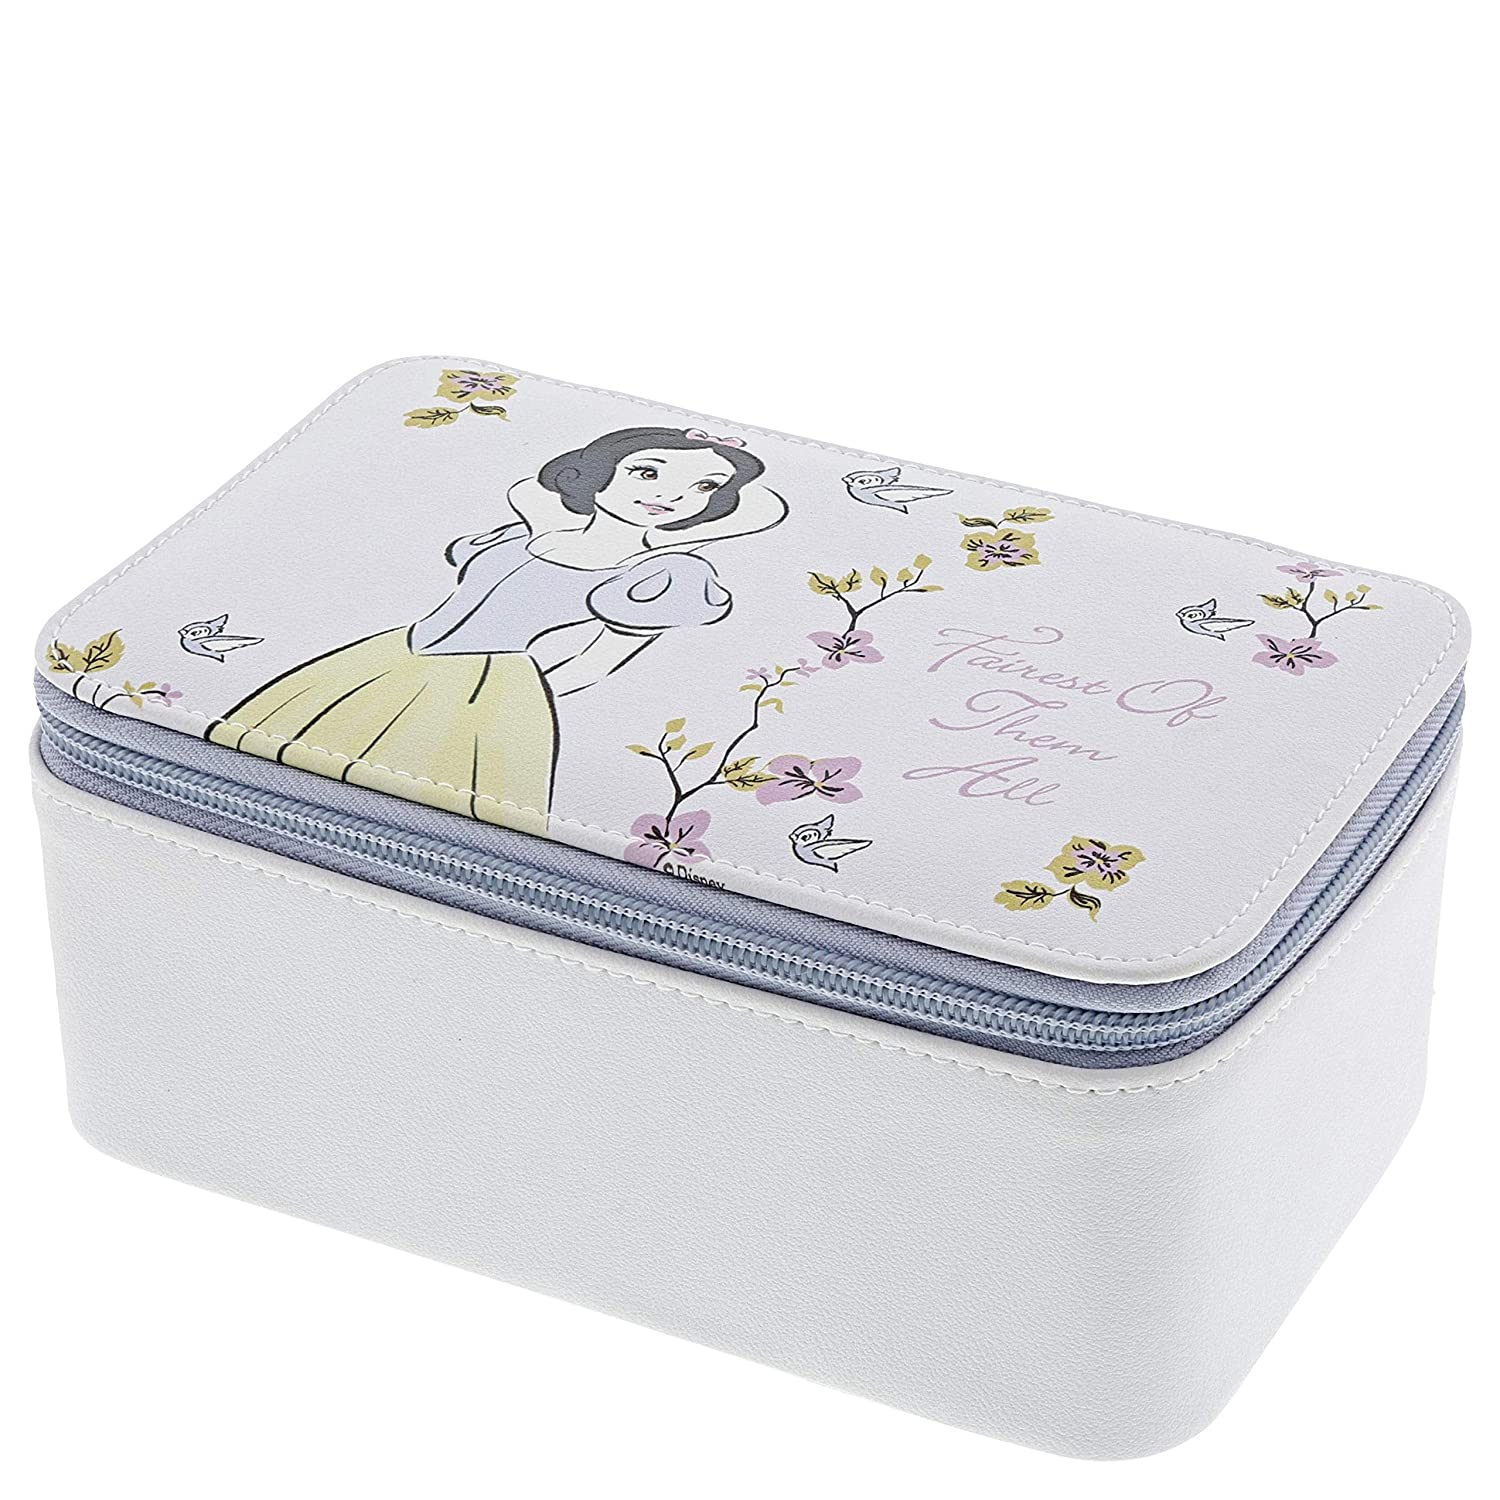 Enchanting Disney Collection Jewellery Box Multi-Colour One Size